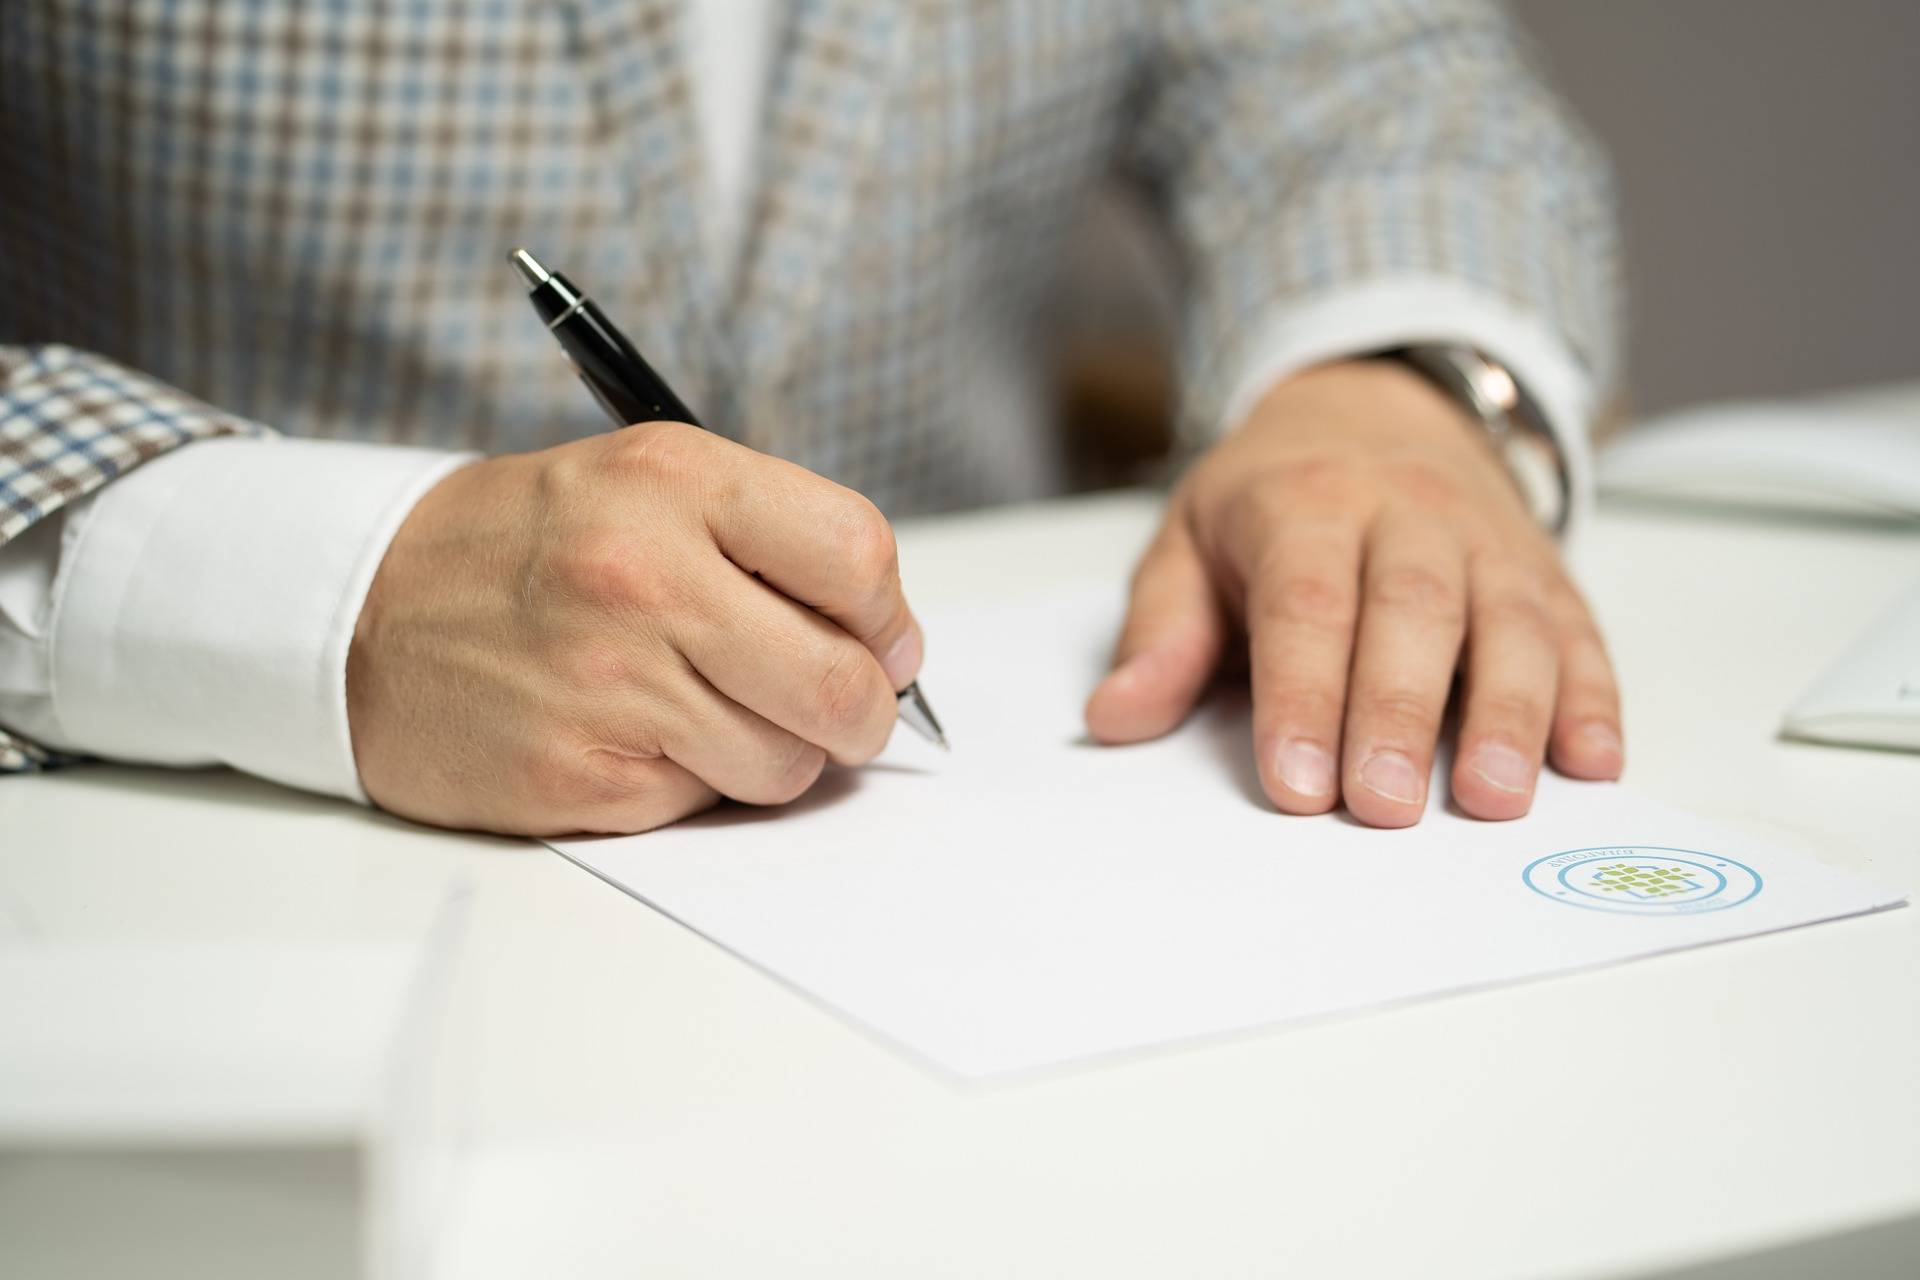 What Are Living Wills and Power of Attorney Documents for Healthcare?